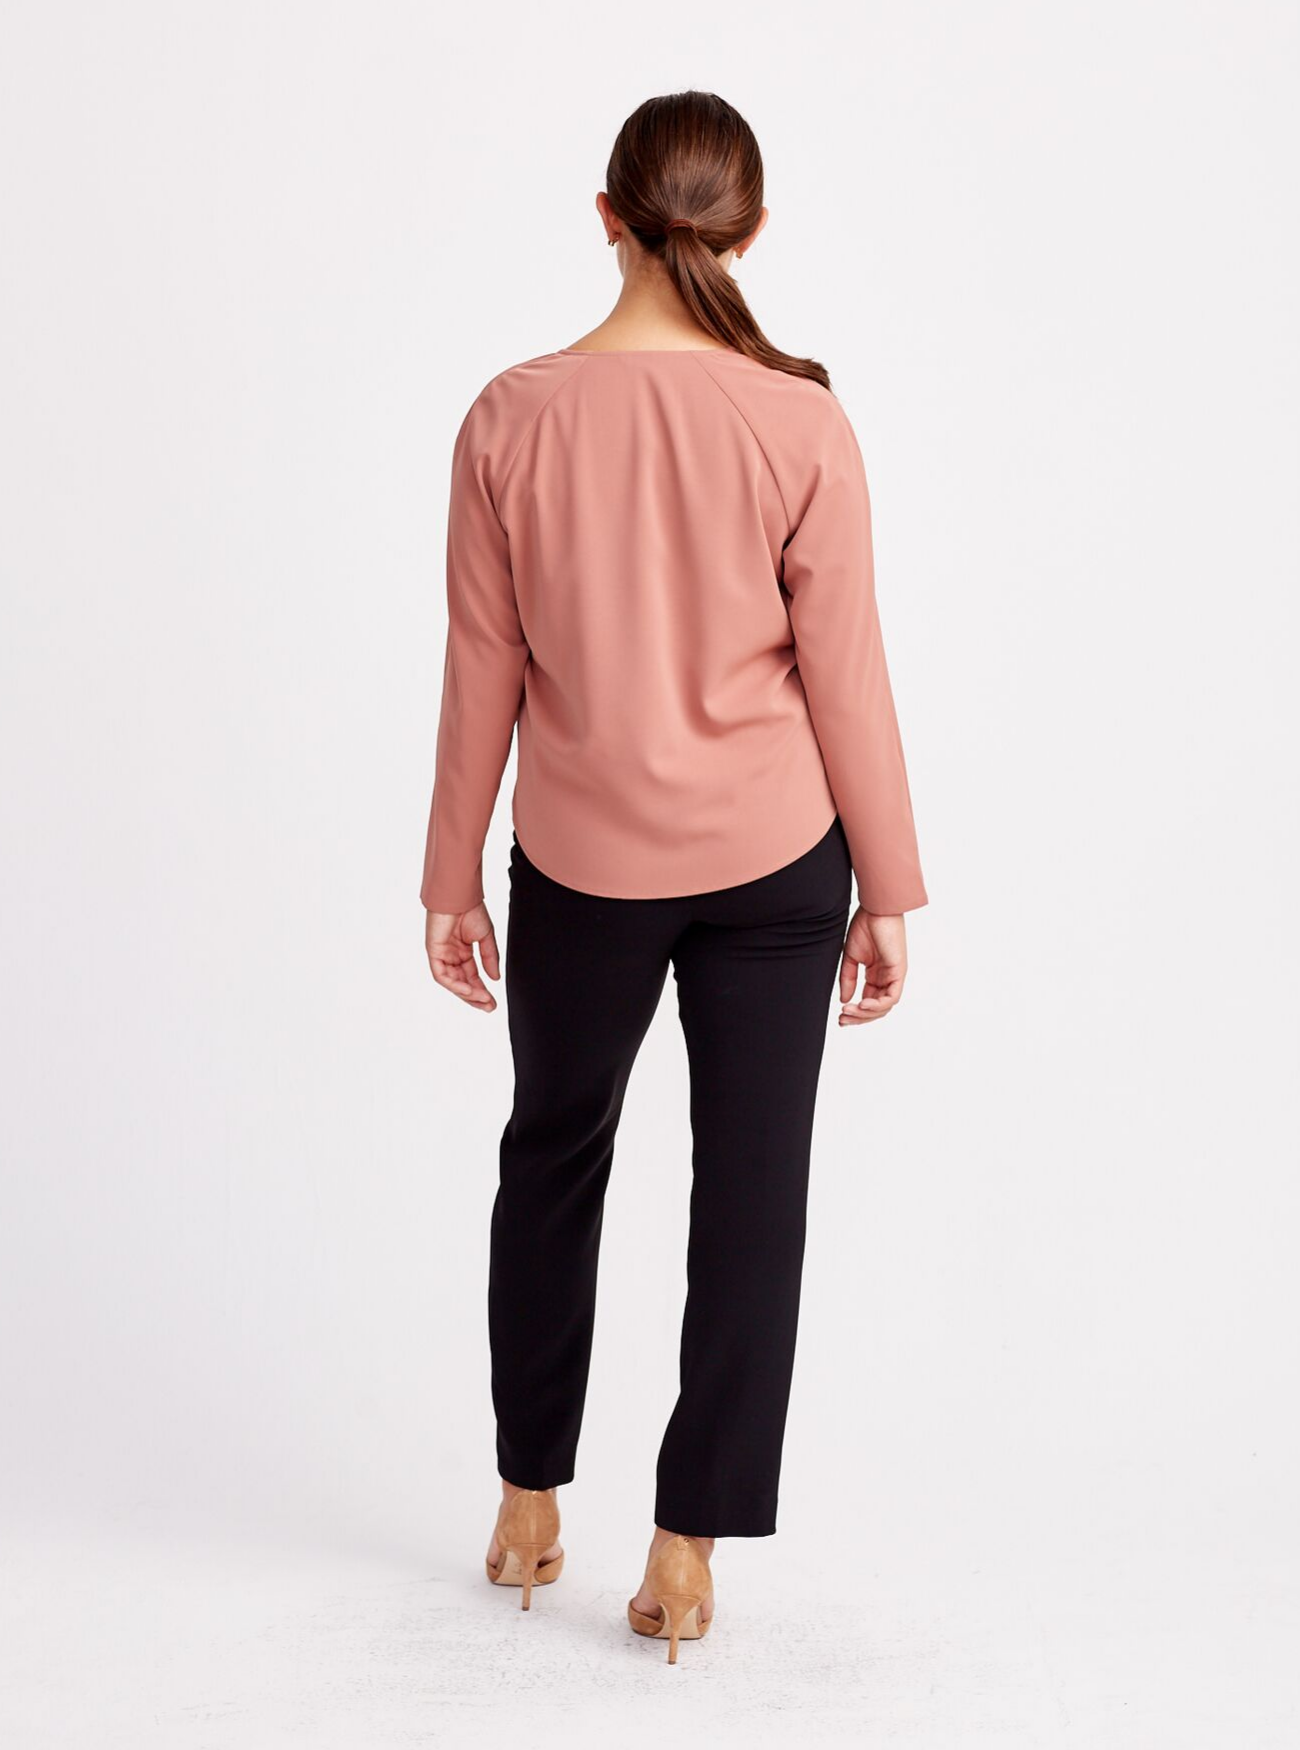 THE CROSSOVER BLOUSE 2.0 - SALE